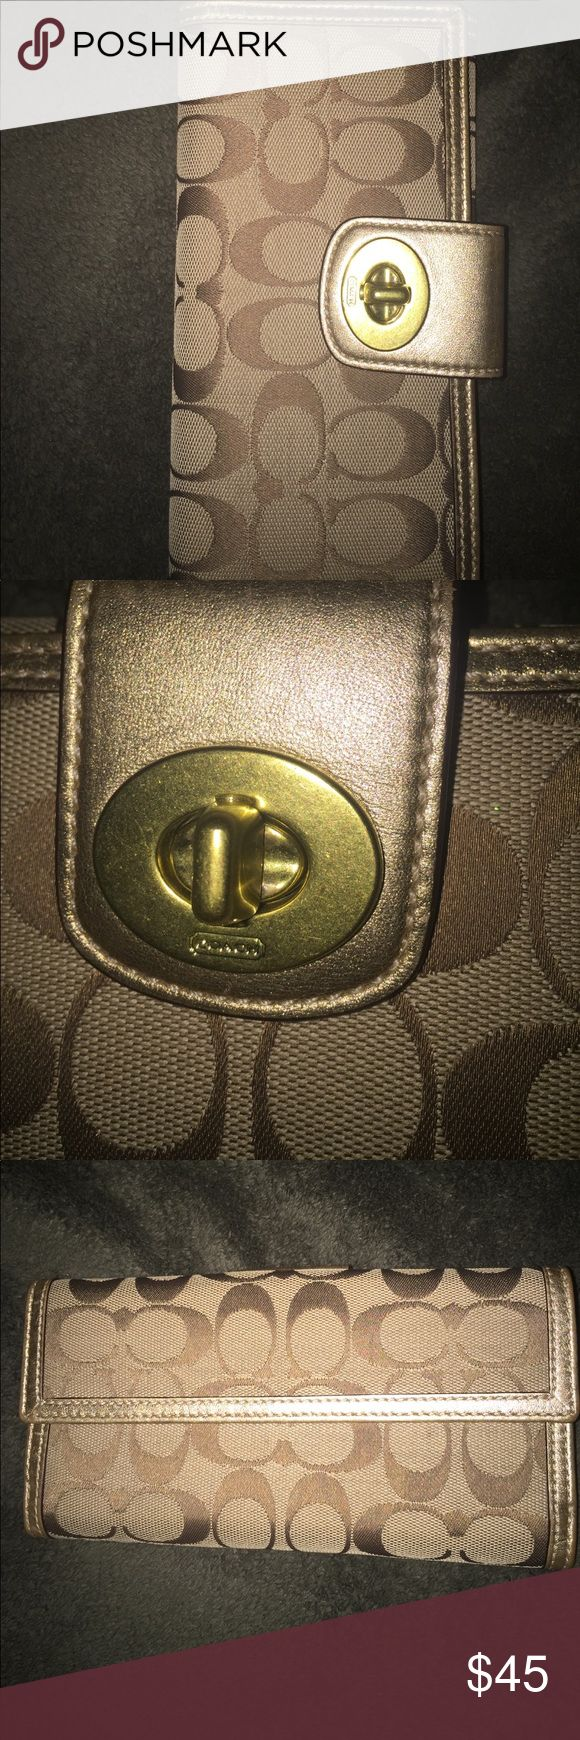 coach wallet used only a couple of times, has small marking on one slot of credit card holder as seen in the last picture. this wallet is in mint condition besides that! Coach Bags Wallets